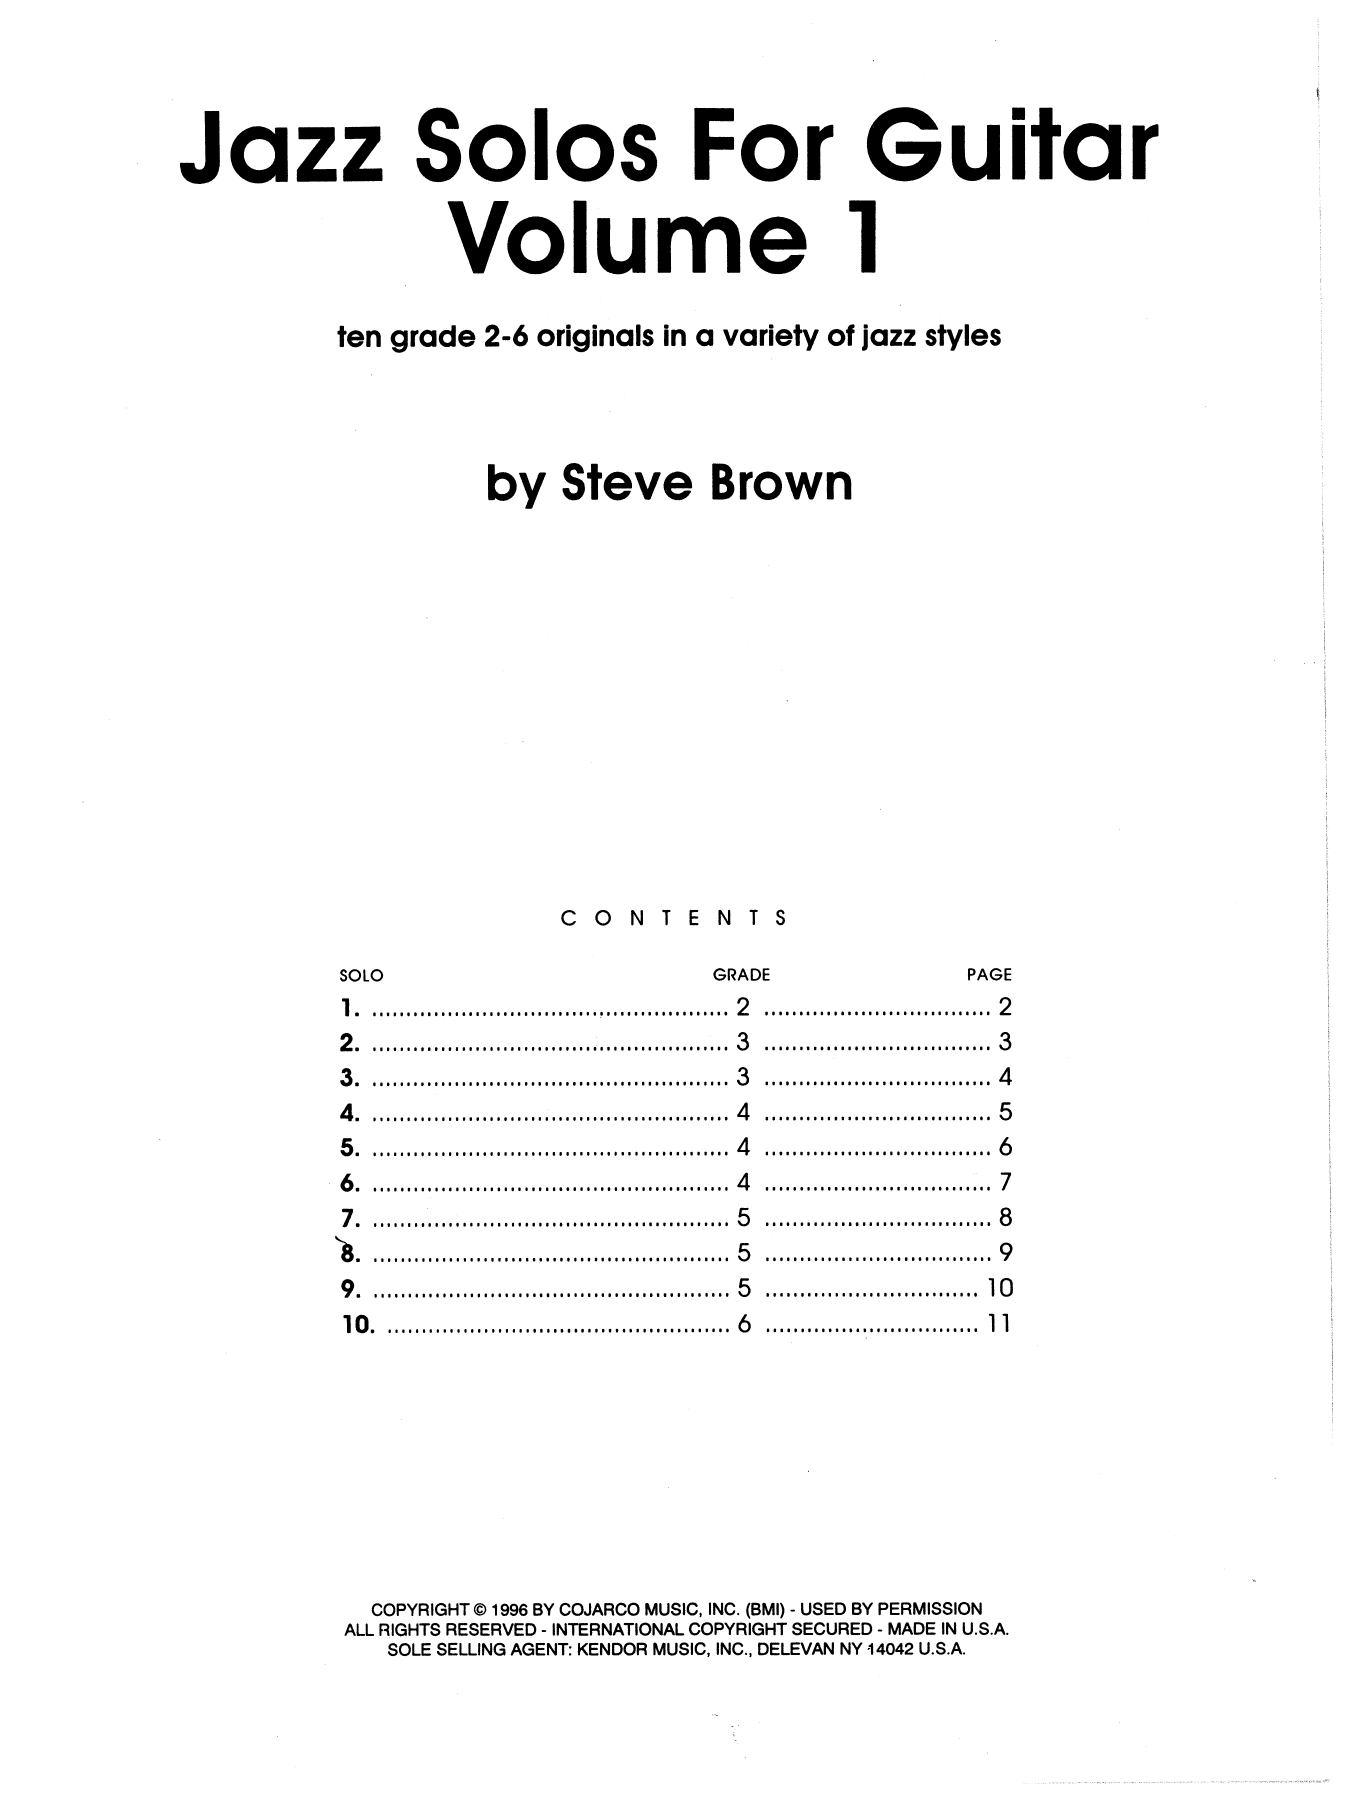 Jazz Solos For Guitar, Volume 1 Sheet Music